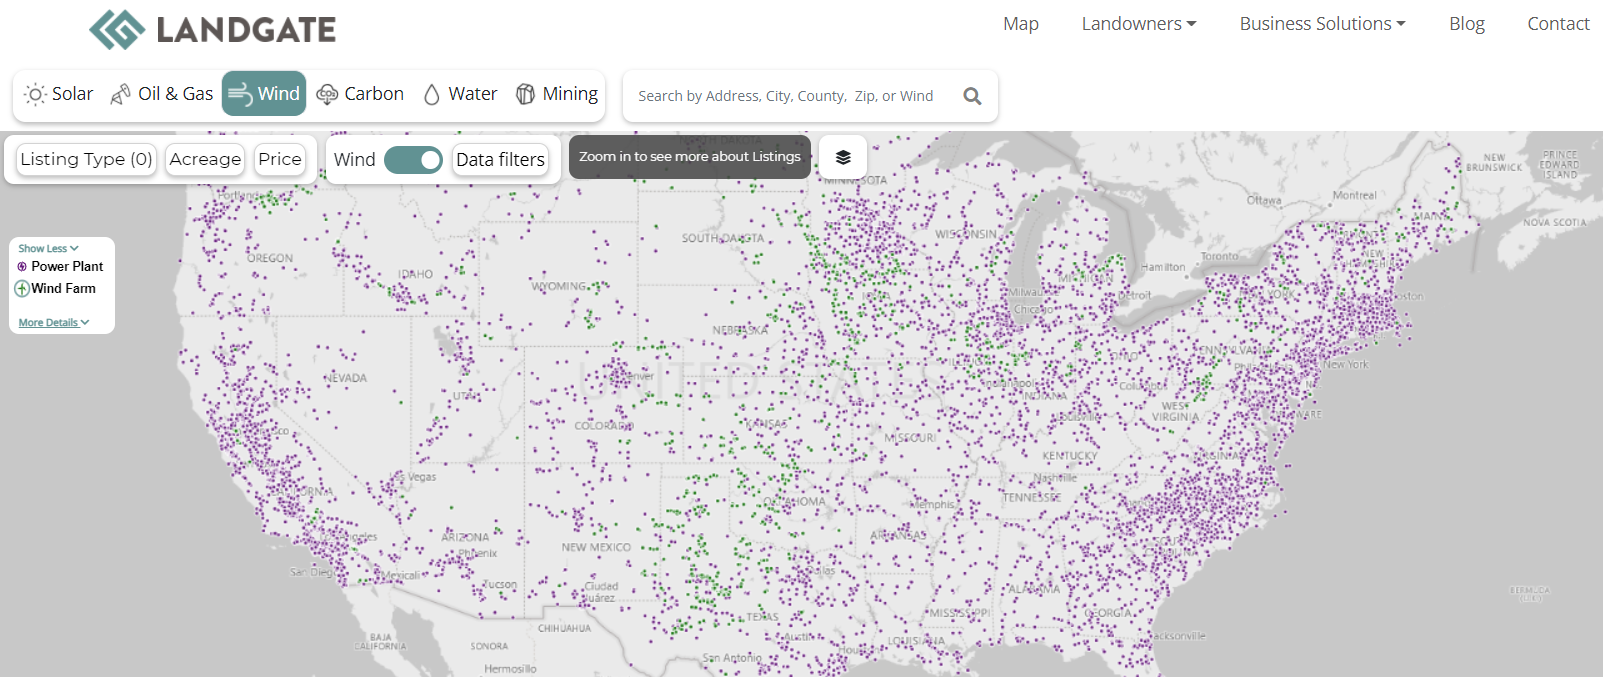 The east coast has a high concentration of wind farms as compared to the rest of the country.